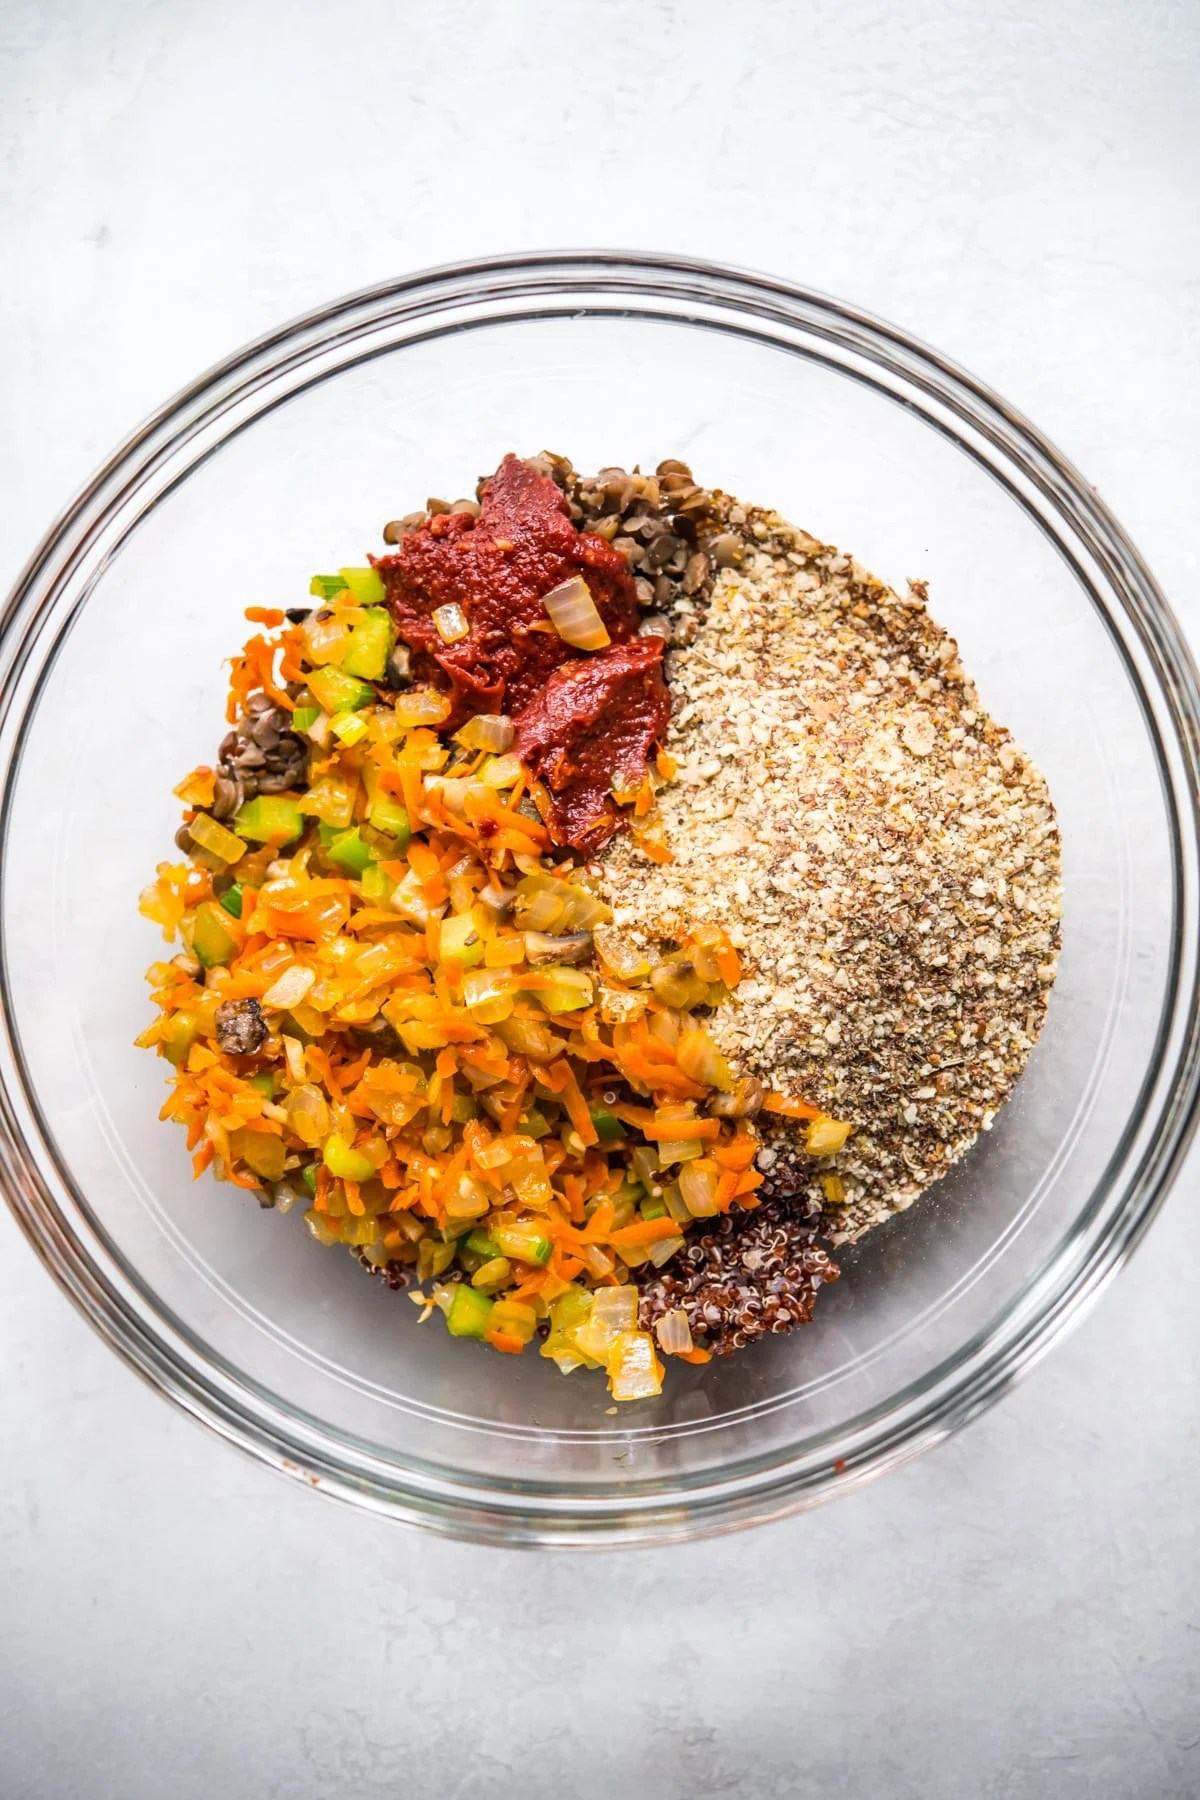 Glass bowl with ingredients for vegan meatloaf, unmixed.